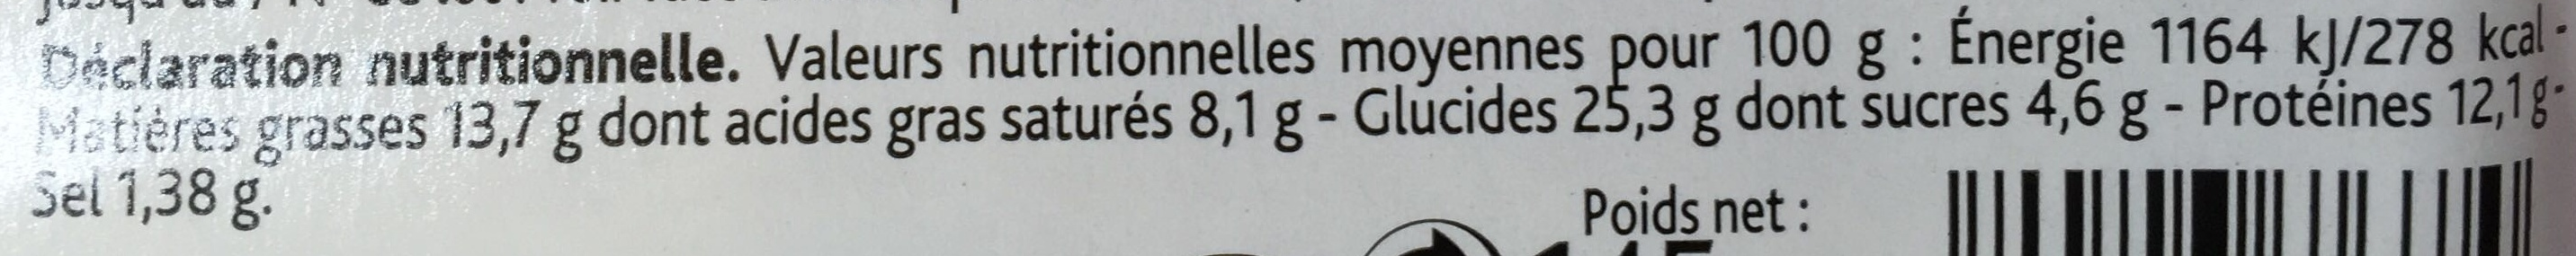 Jambon Cheddar - Nutrition facts